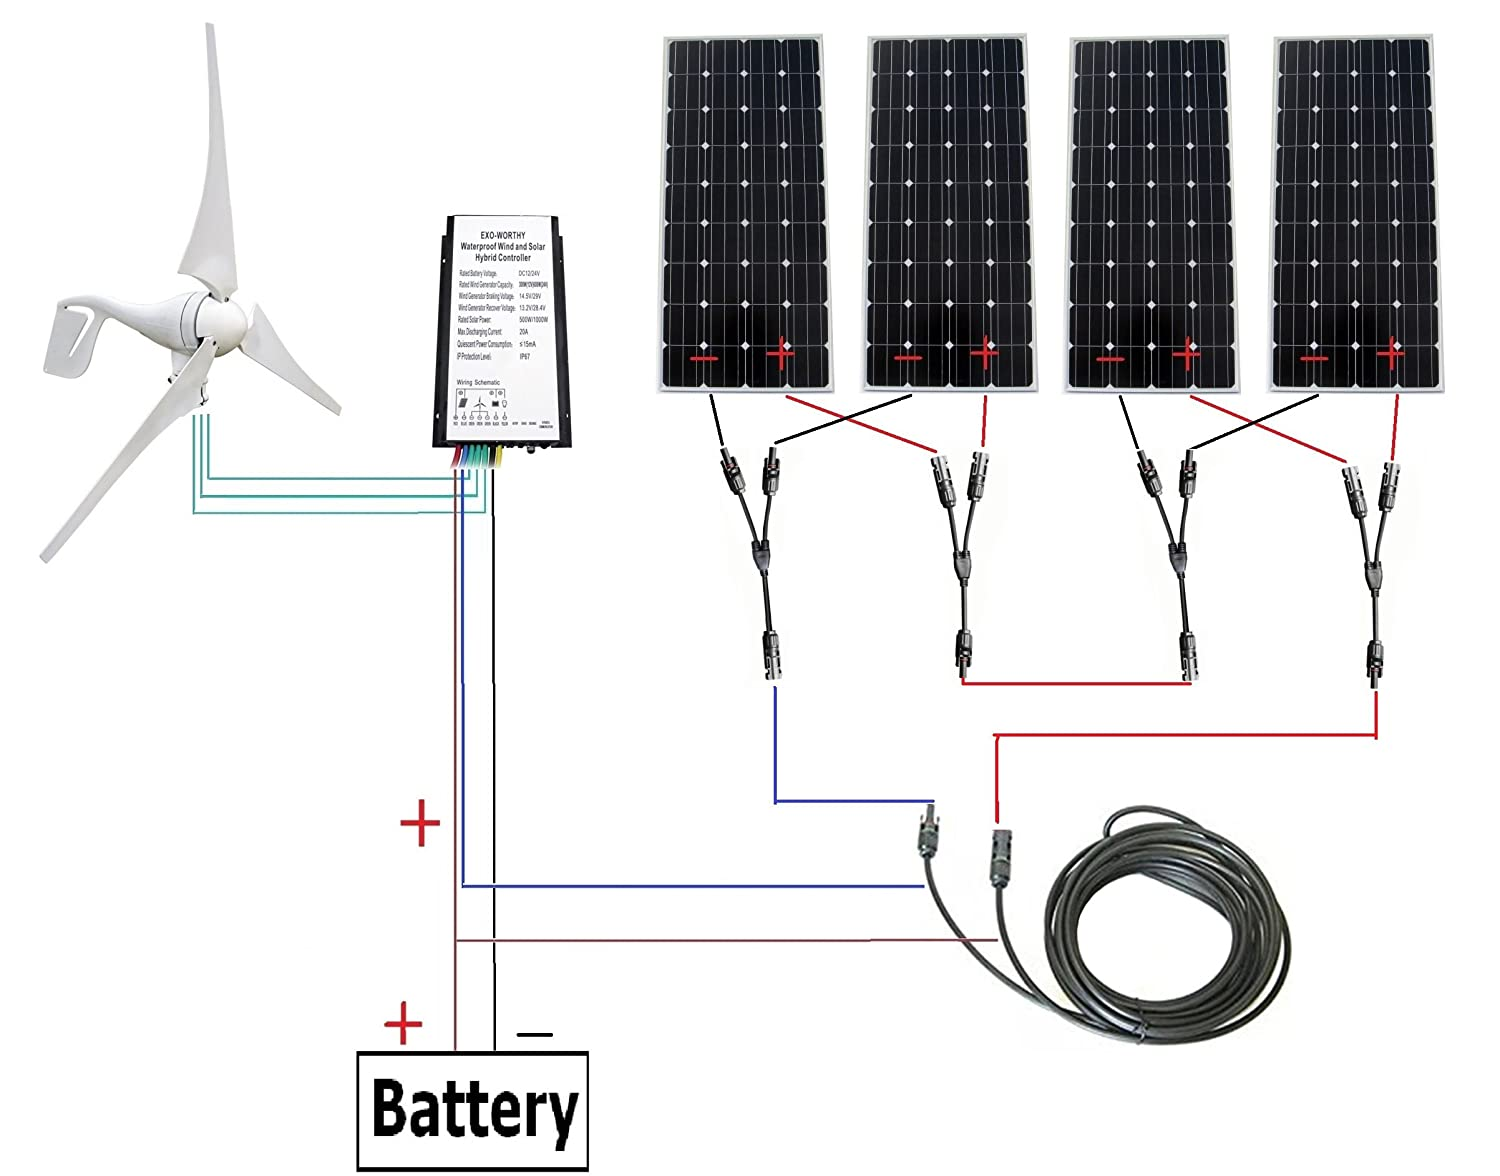 ECO-WORTHY 24 Volts 1kw Wind Solar Powered System: 1pc 12V/24V 400W Wind Turbine Generator + 4pcs 12V 160W Mono Solar Panel + 1pc 50ft Solar Cable Adapter + Y Branch MC4 Connectors